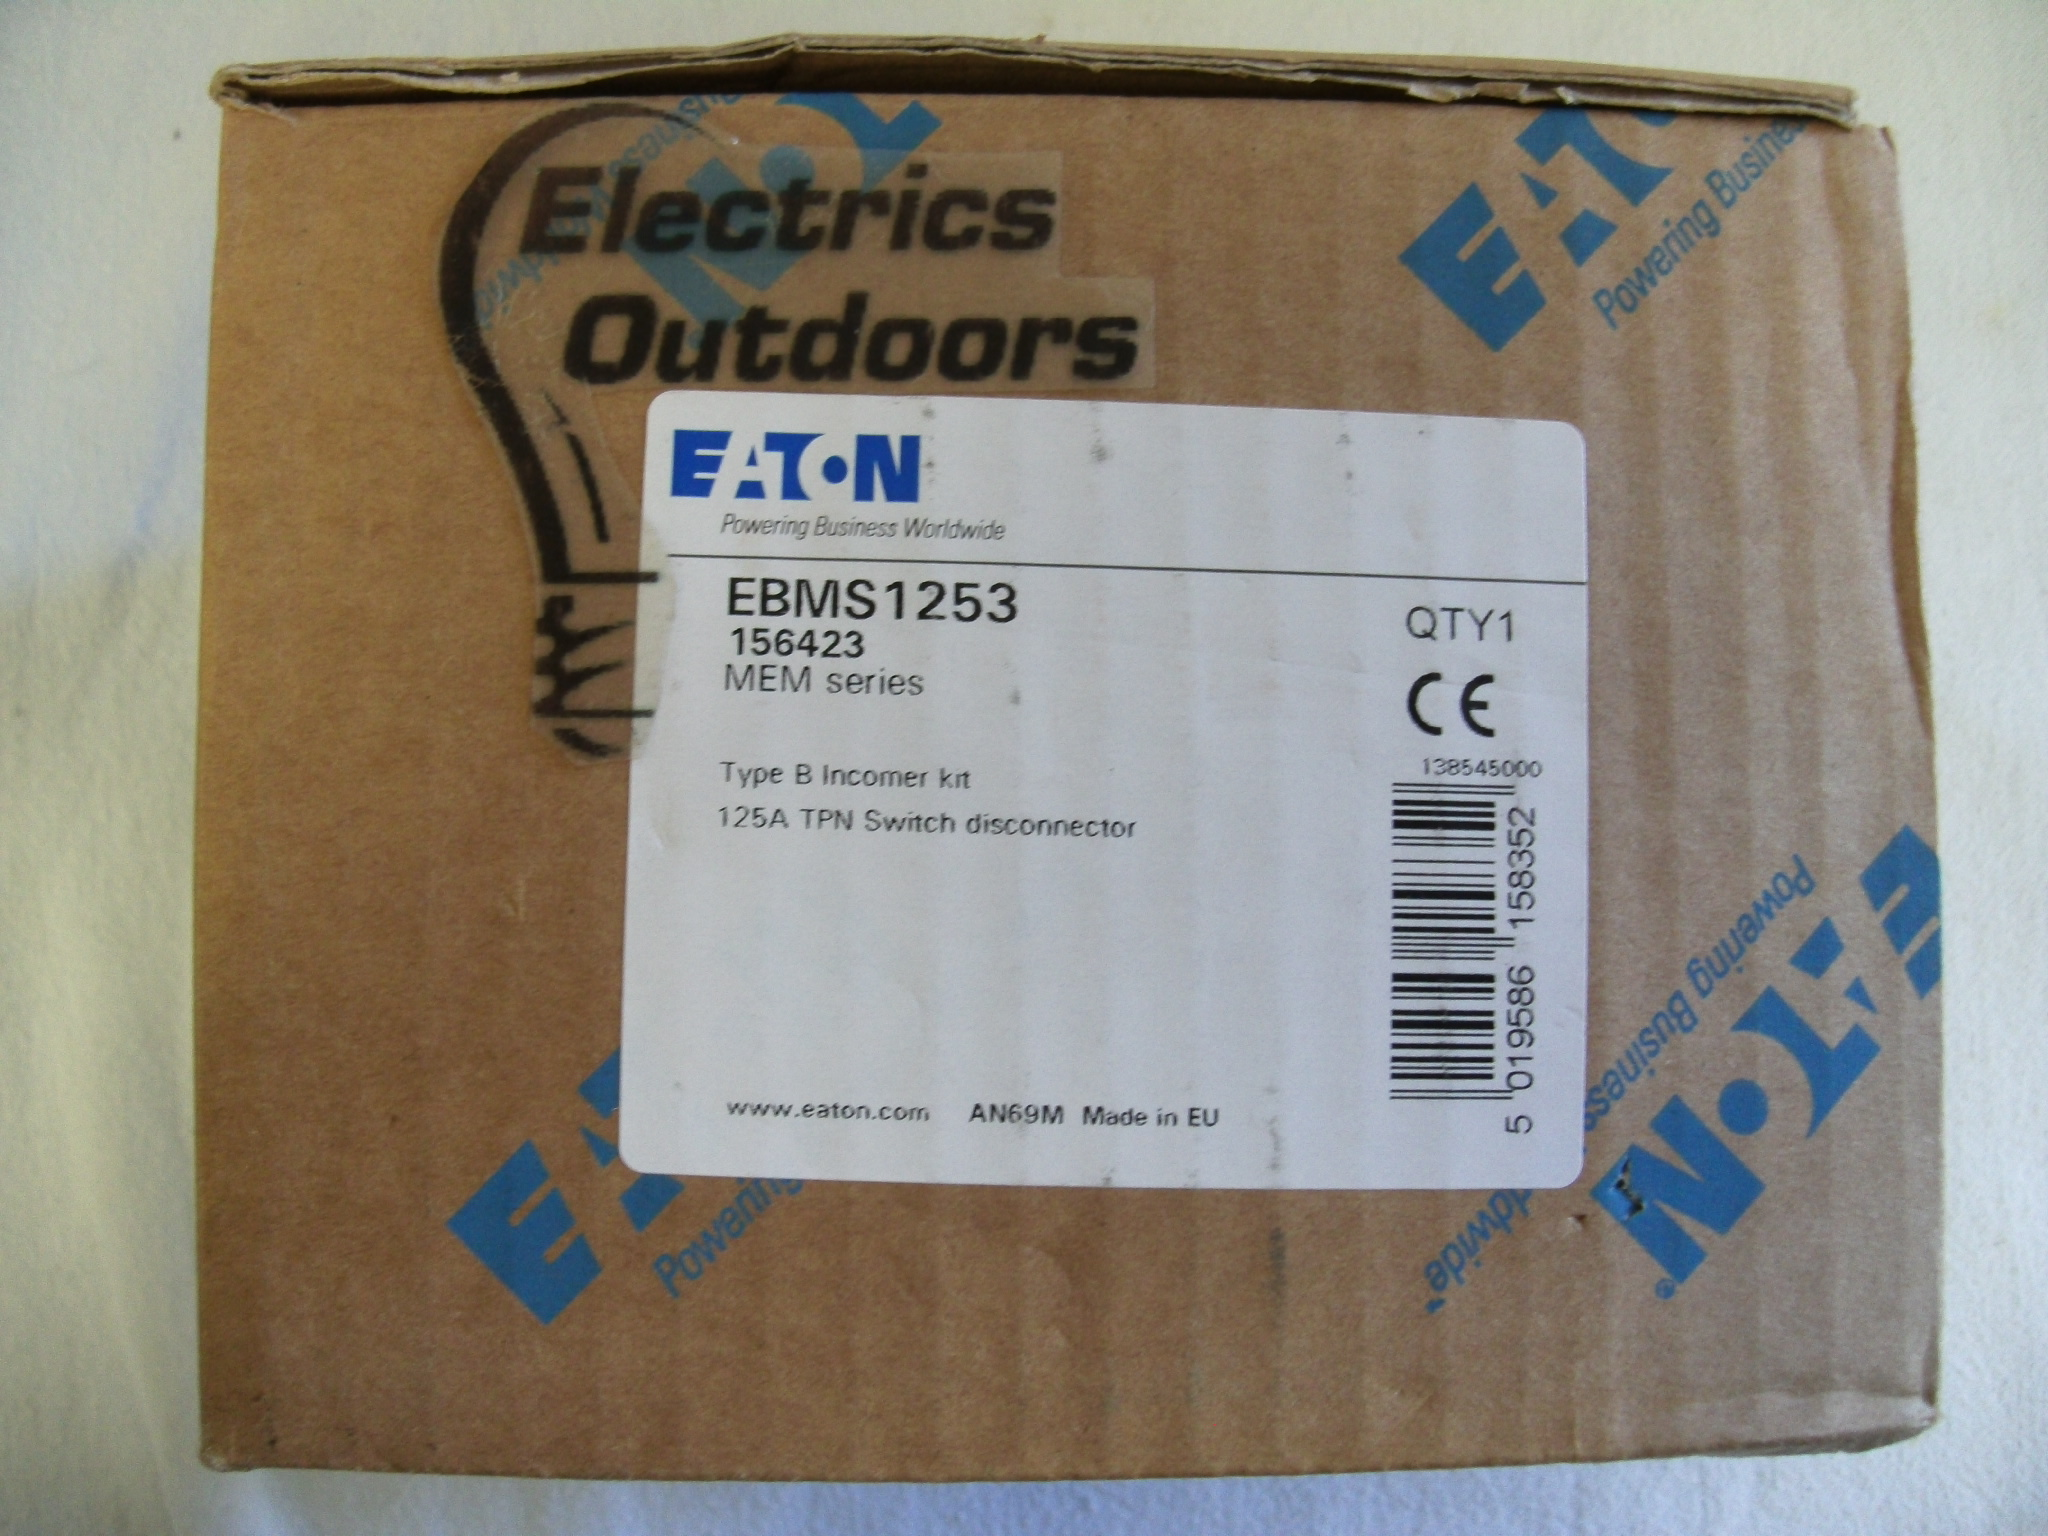 EATON 125 AMP TPN MAIN SWITCH DISCONNECTOR EBMS1253